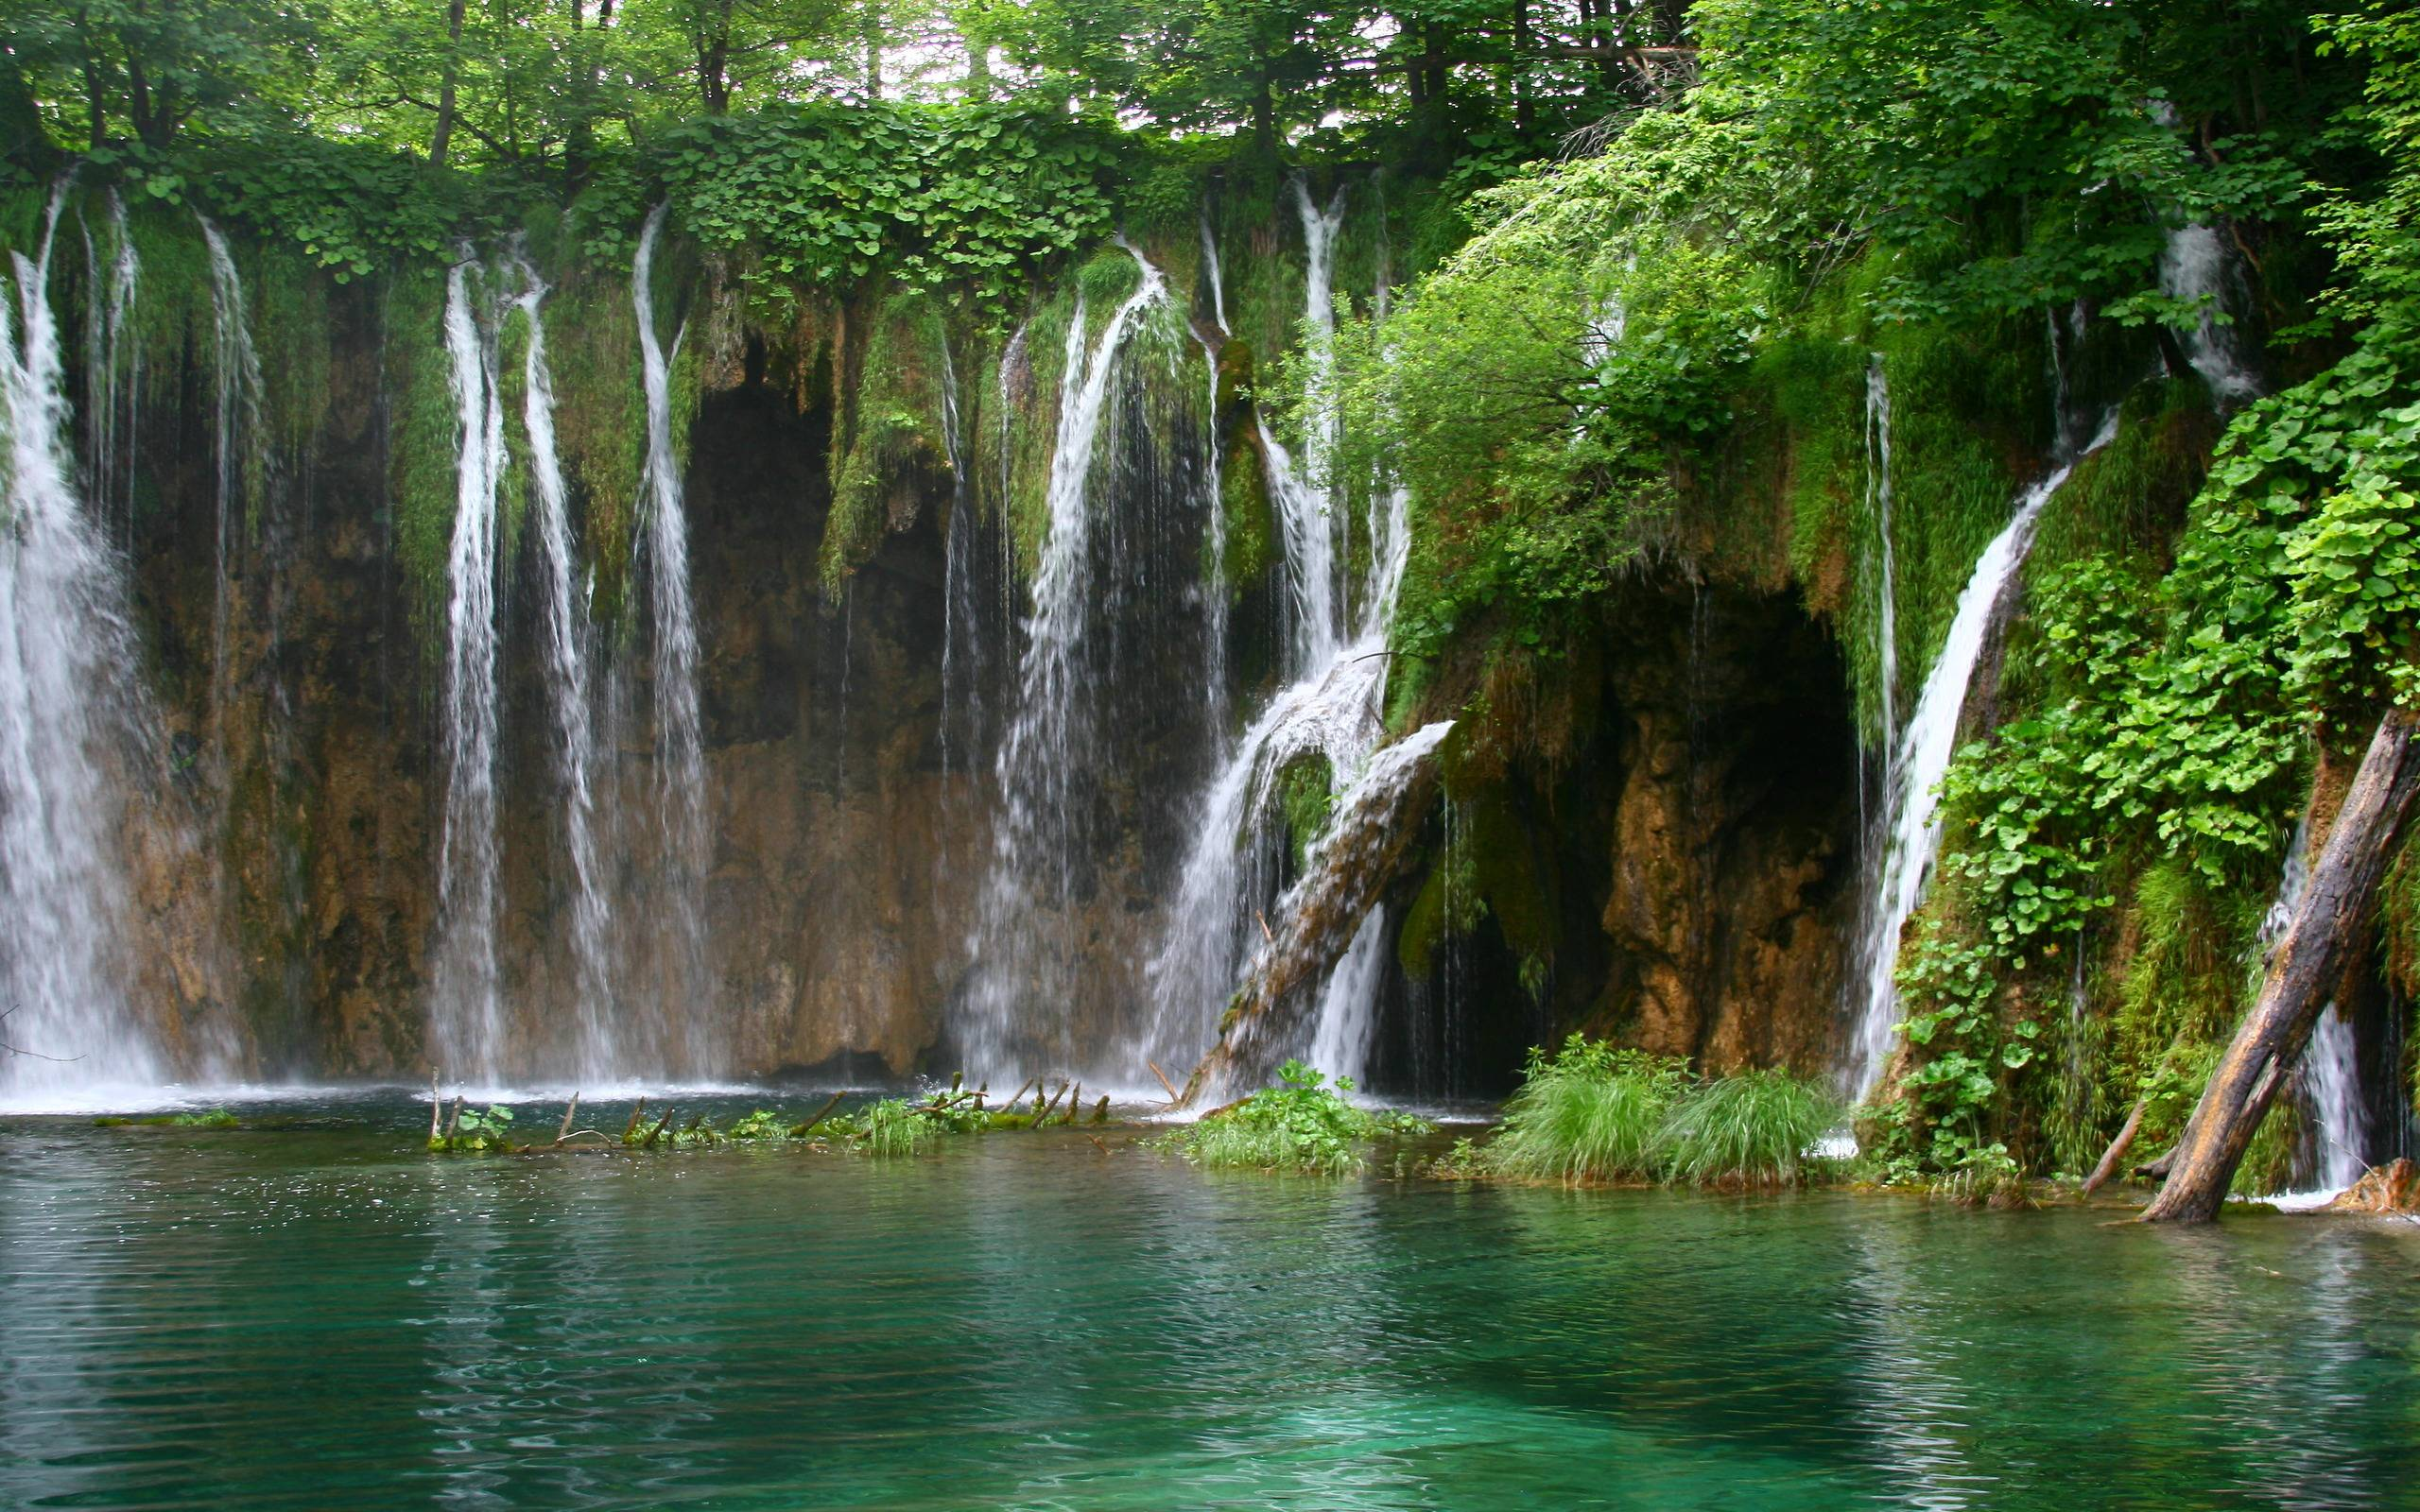 Paradise Nuance Forest Waterfall Wallpaper, iPhone Wallpapers